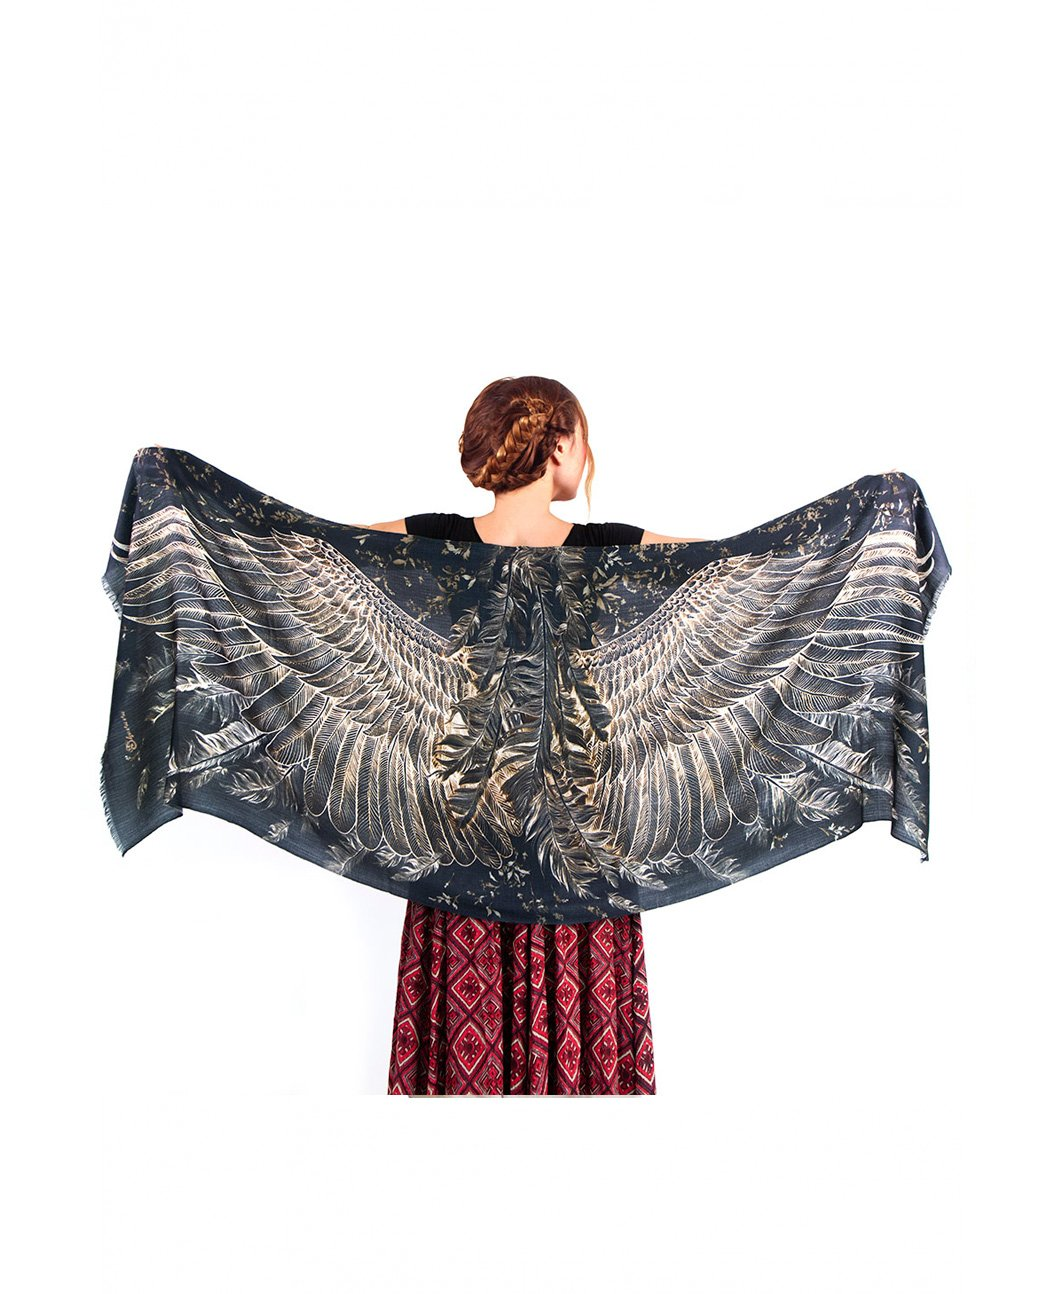 Black Evening Bird feathers Hand Painted & Printed Pure Cotton Shawl Scarf